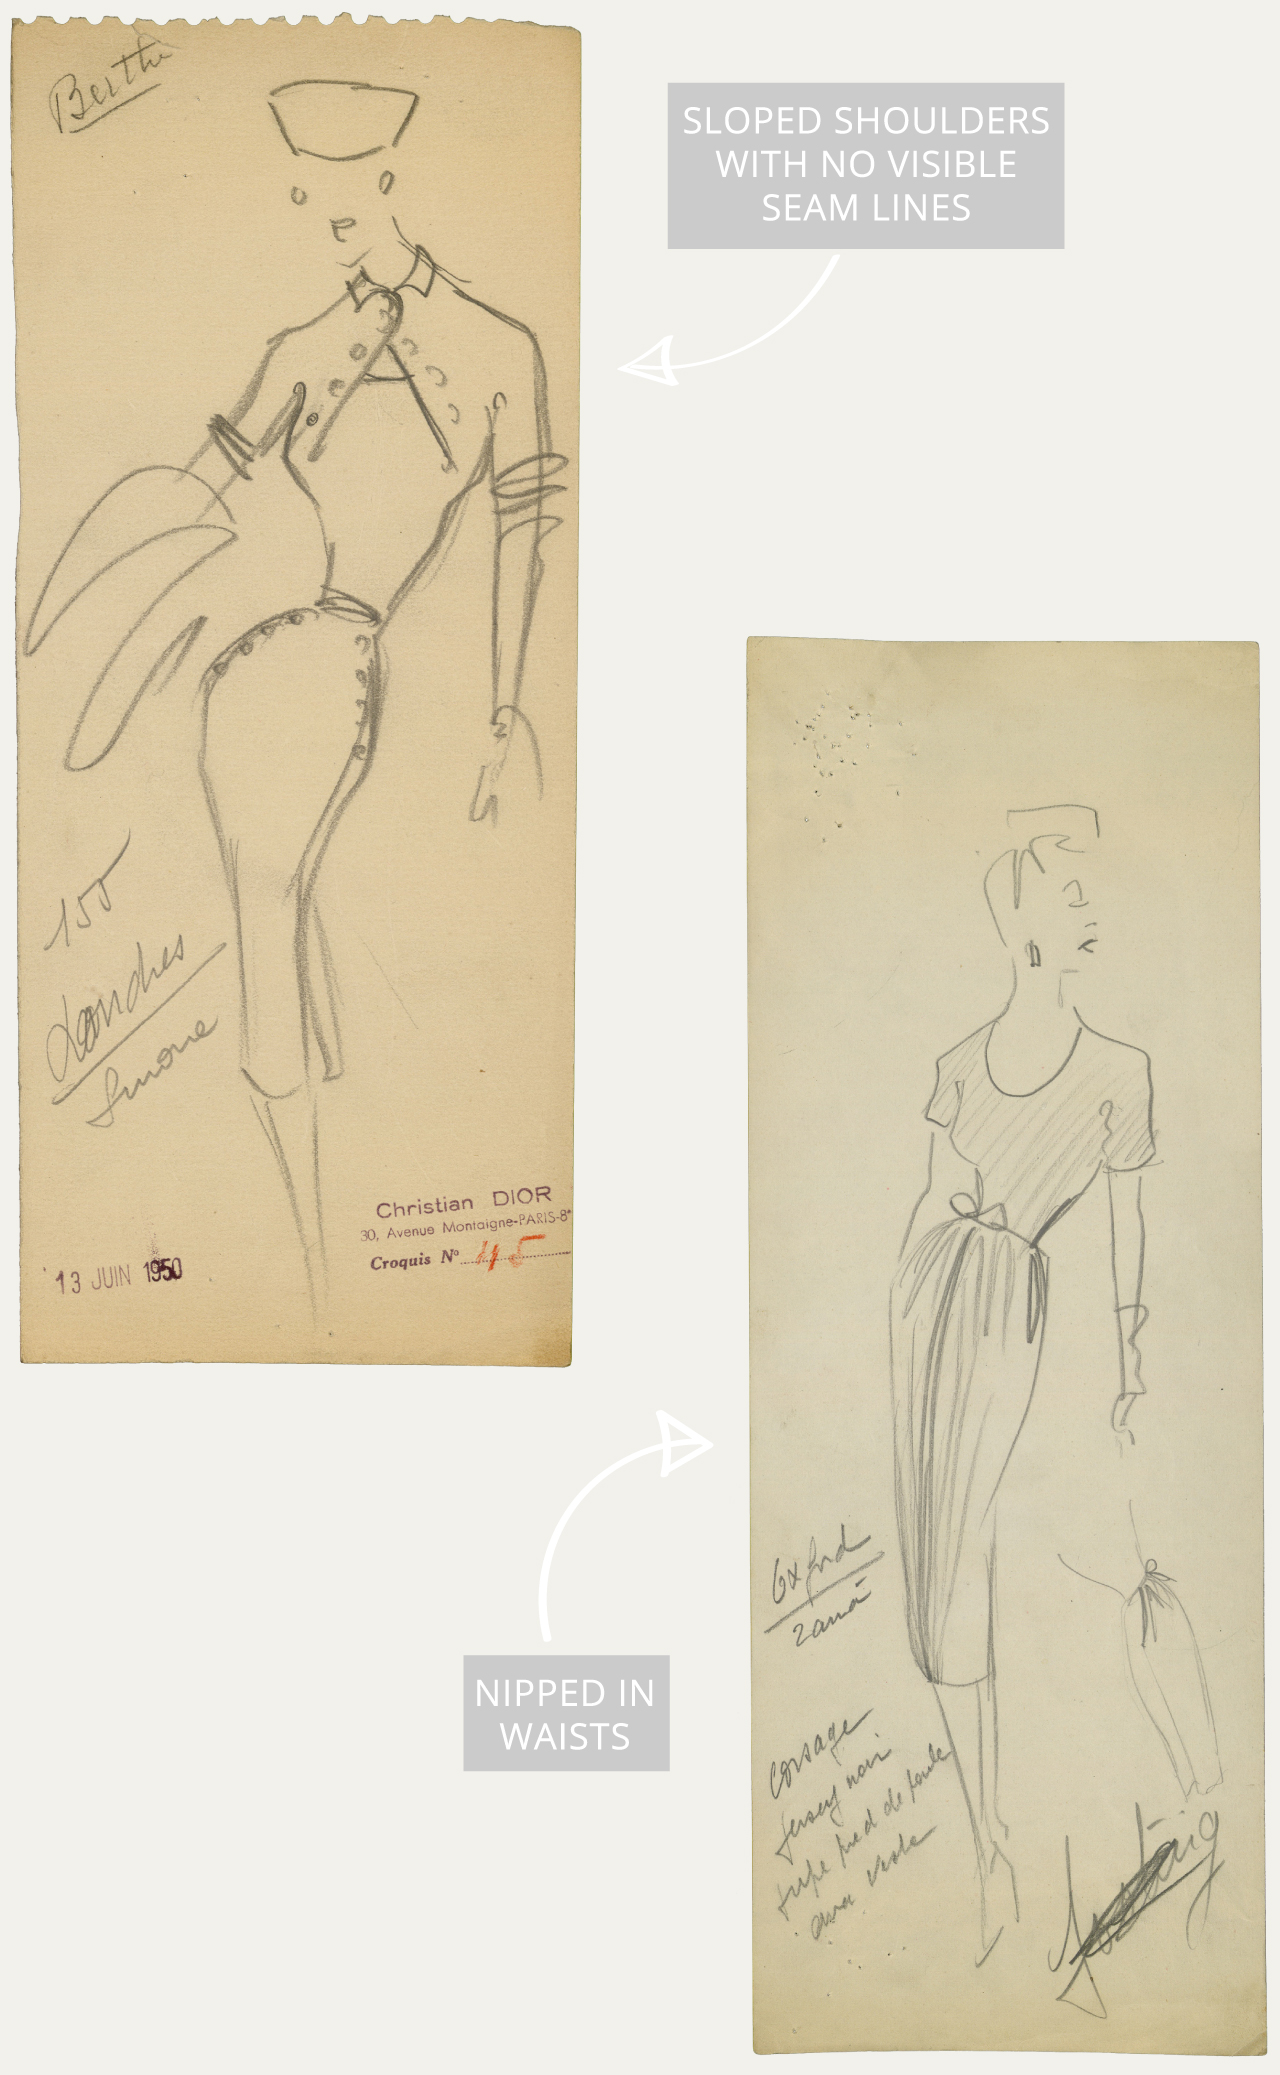 Christian Dior: Designer of Dreams. The Cutting Class. Sketch by Christian Dior for model Londres, Autumn-Winter 1950 Haute Couture collection © Christian Dior. Sketch by Christian Dior for model Oxford, Spring-Summer 1947 Haute Couture collection © Christian Dior.